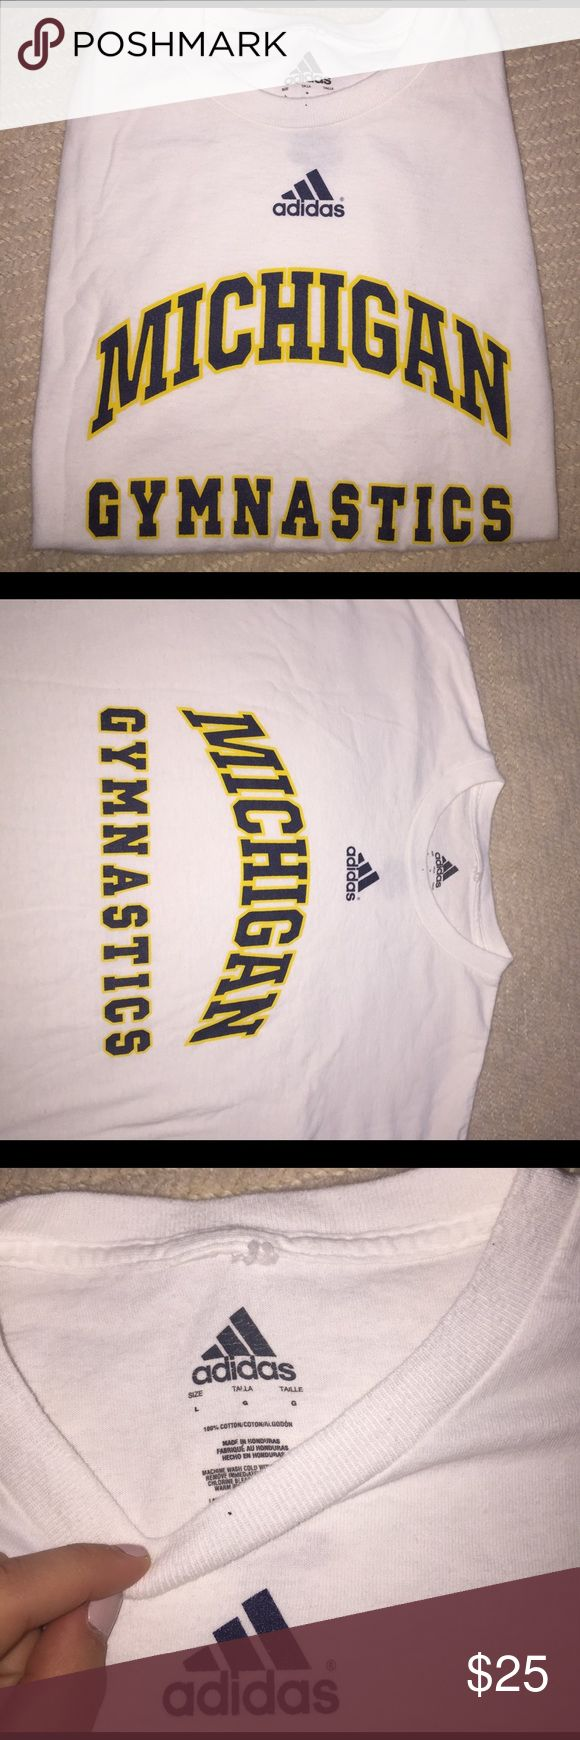 Michigan Gymnastics shirt Worn maybe two times, in great condition. Size child large. Adidas brand. Adidas Shirts & Tops Tees - Short Sleeve